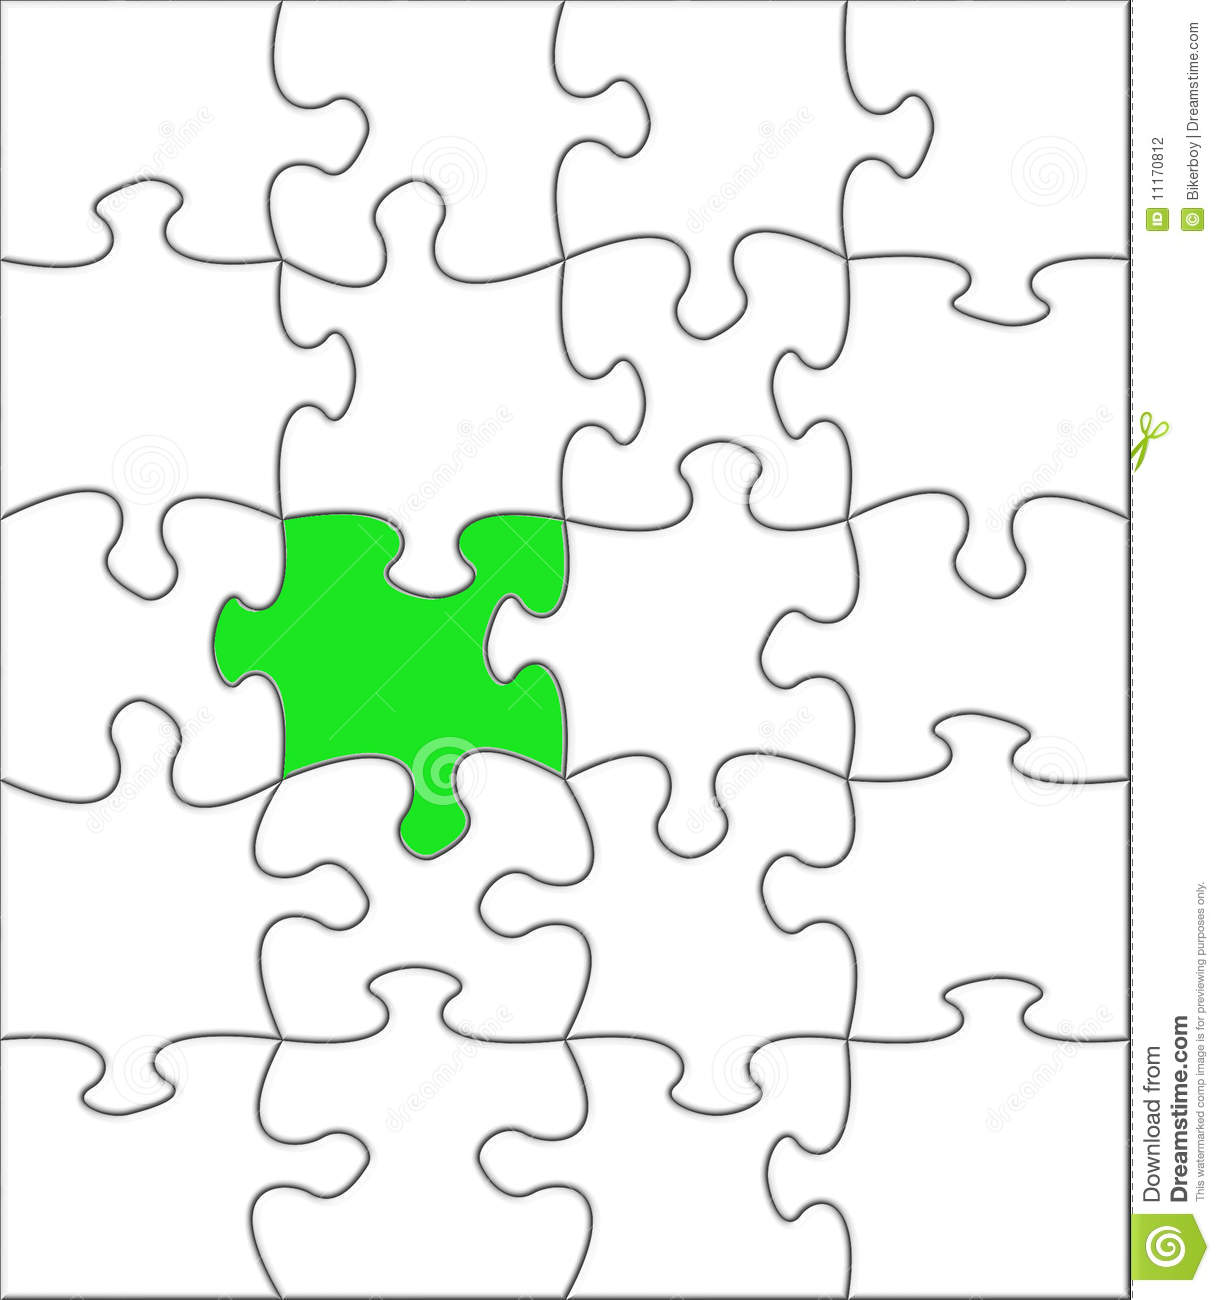 Puzzle One Different Stock Illustration Illustration Of Game